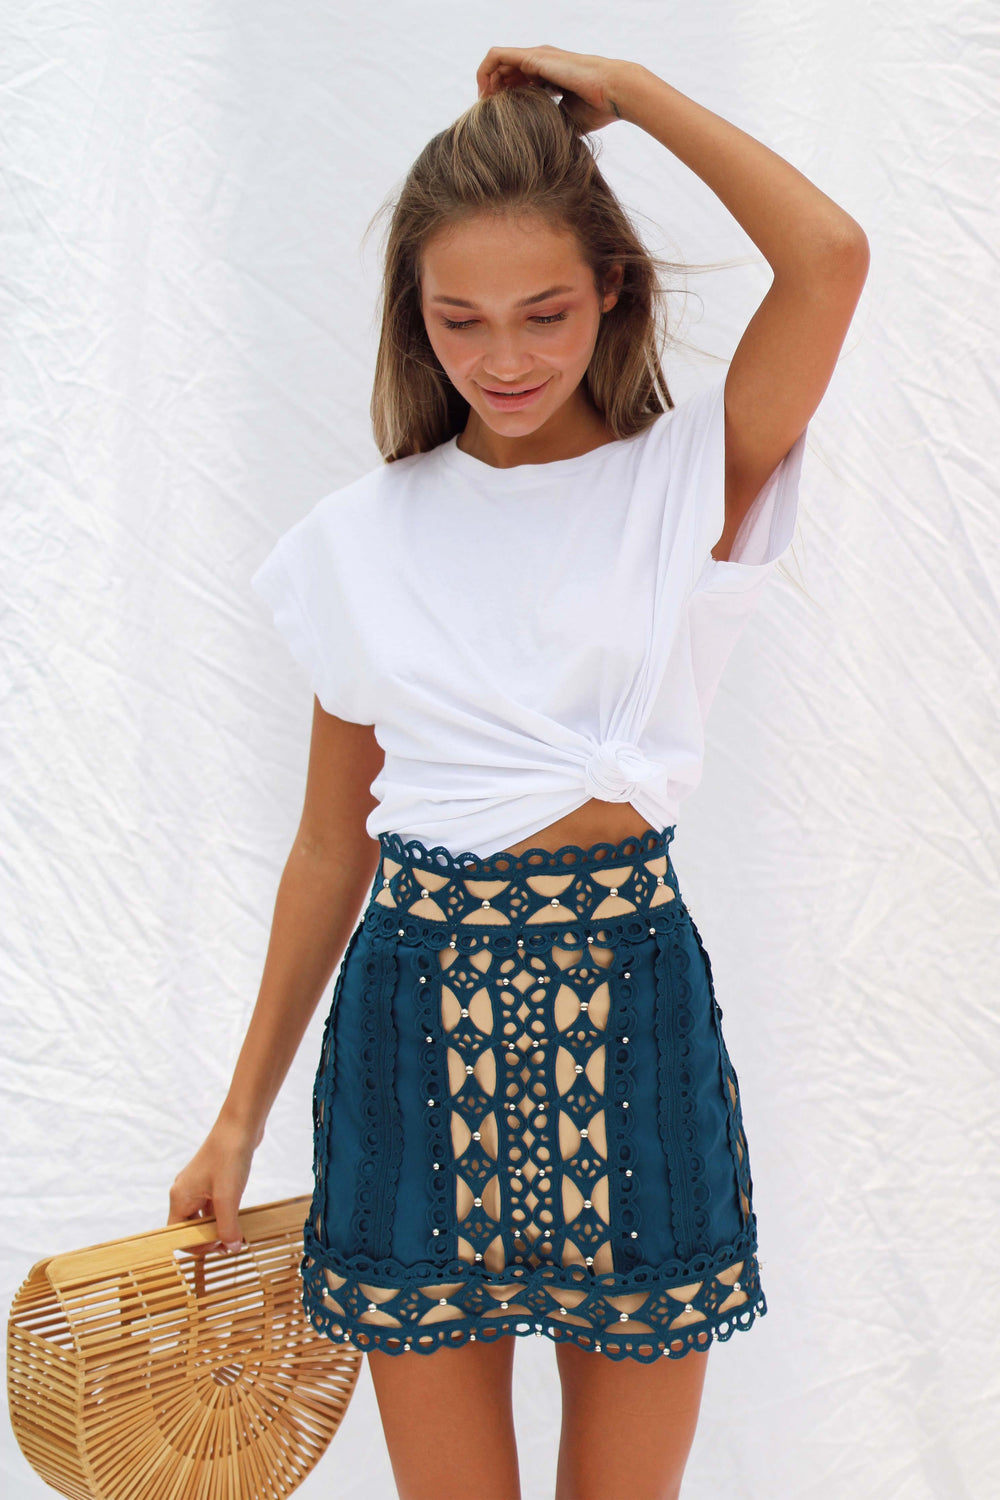 AYA SKIRT IN BLUE - Chic Le Frique